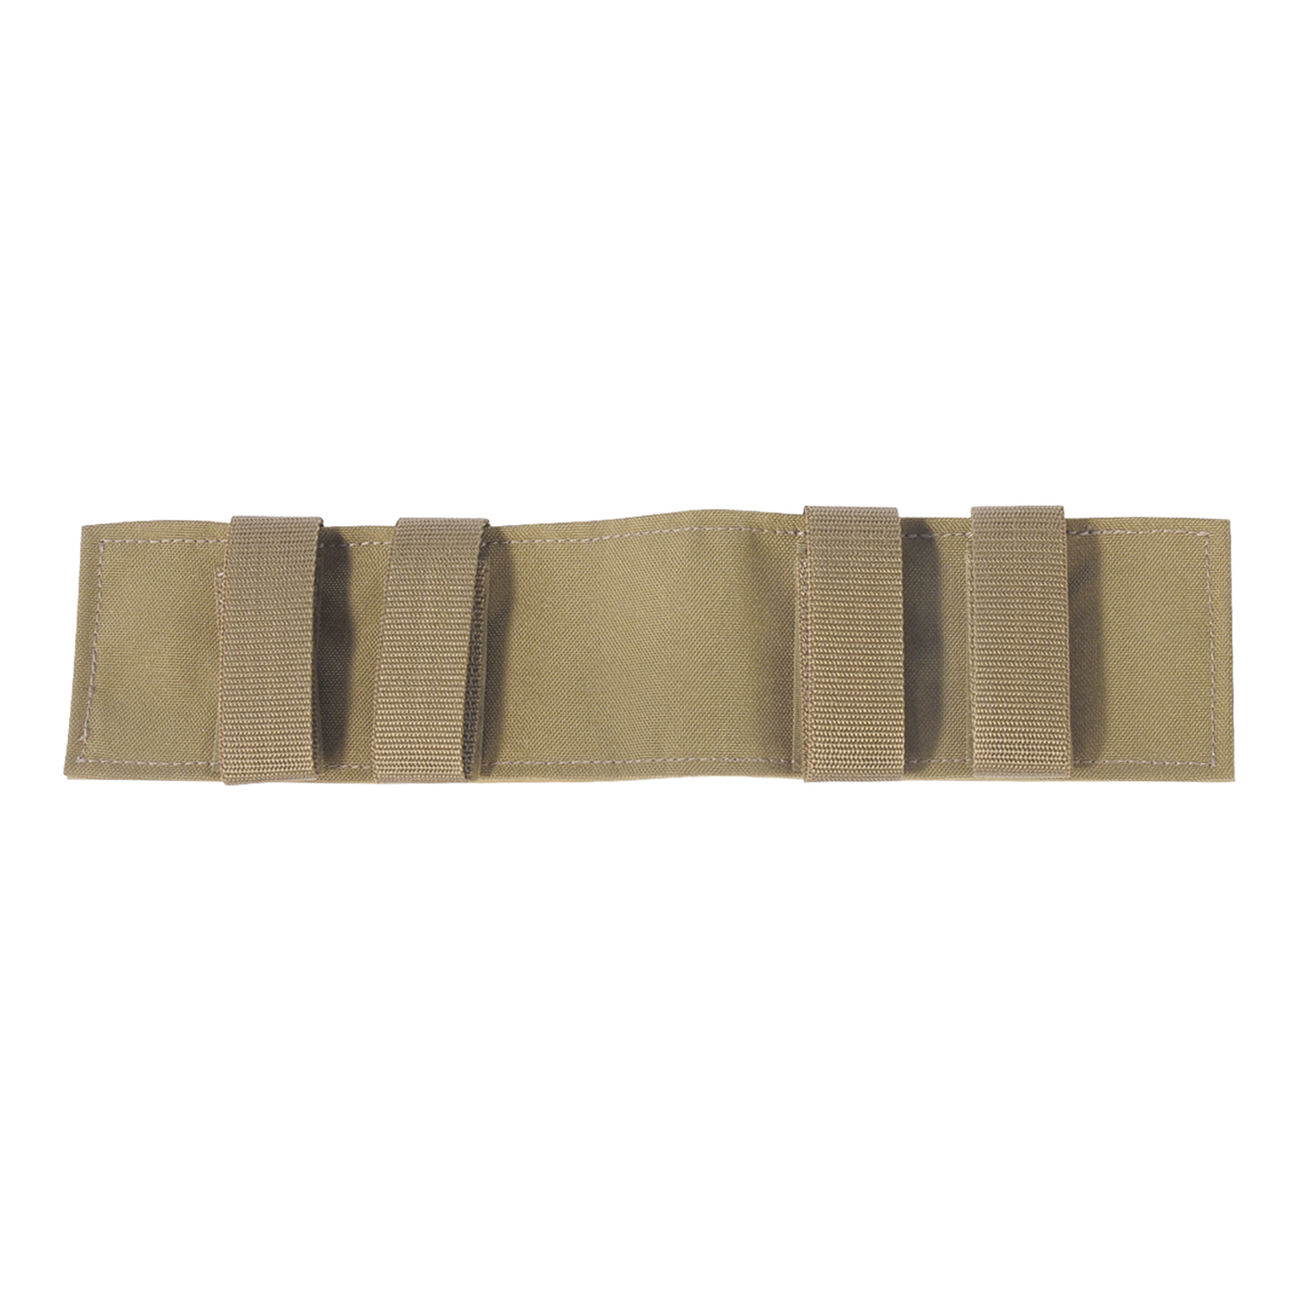 TT Modular Patch Holder khaki 0